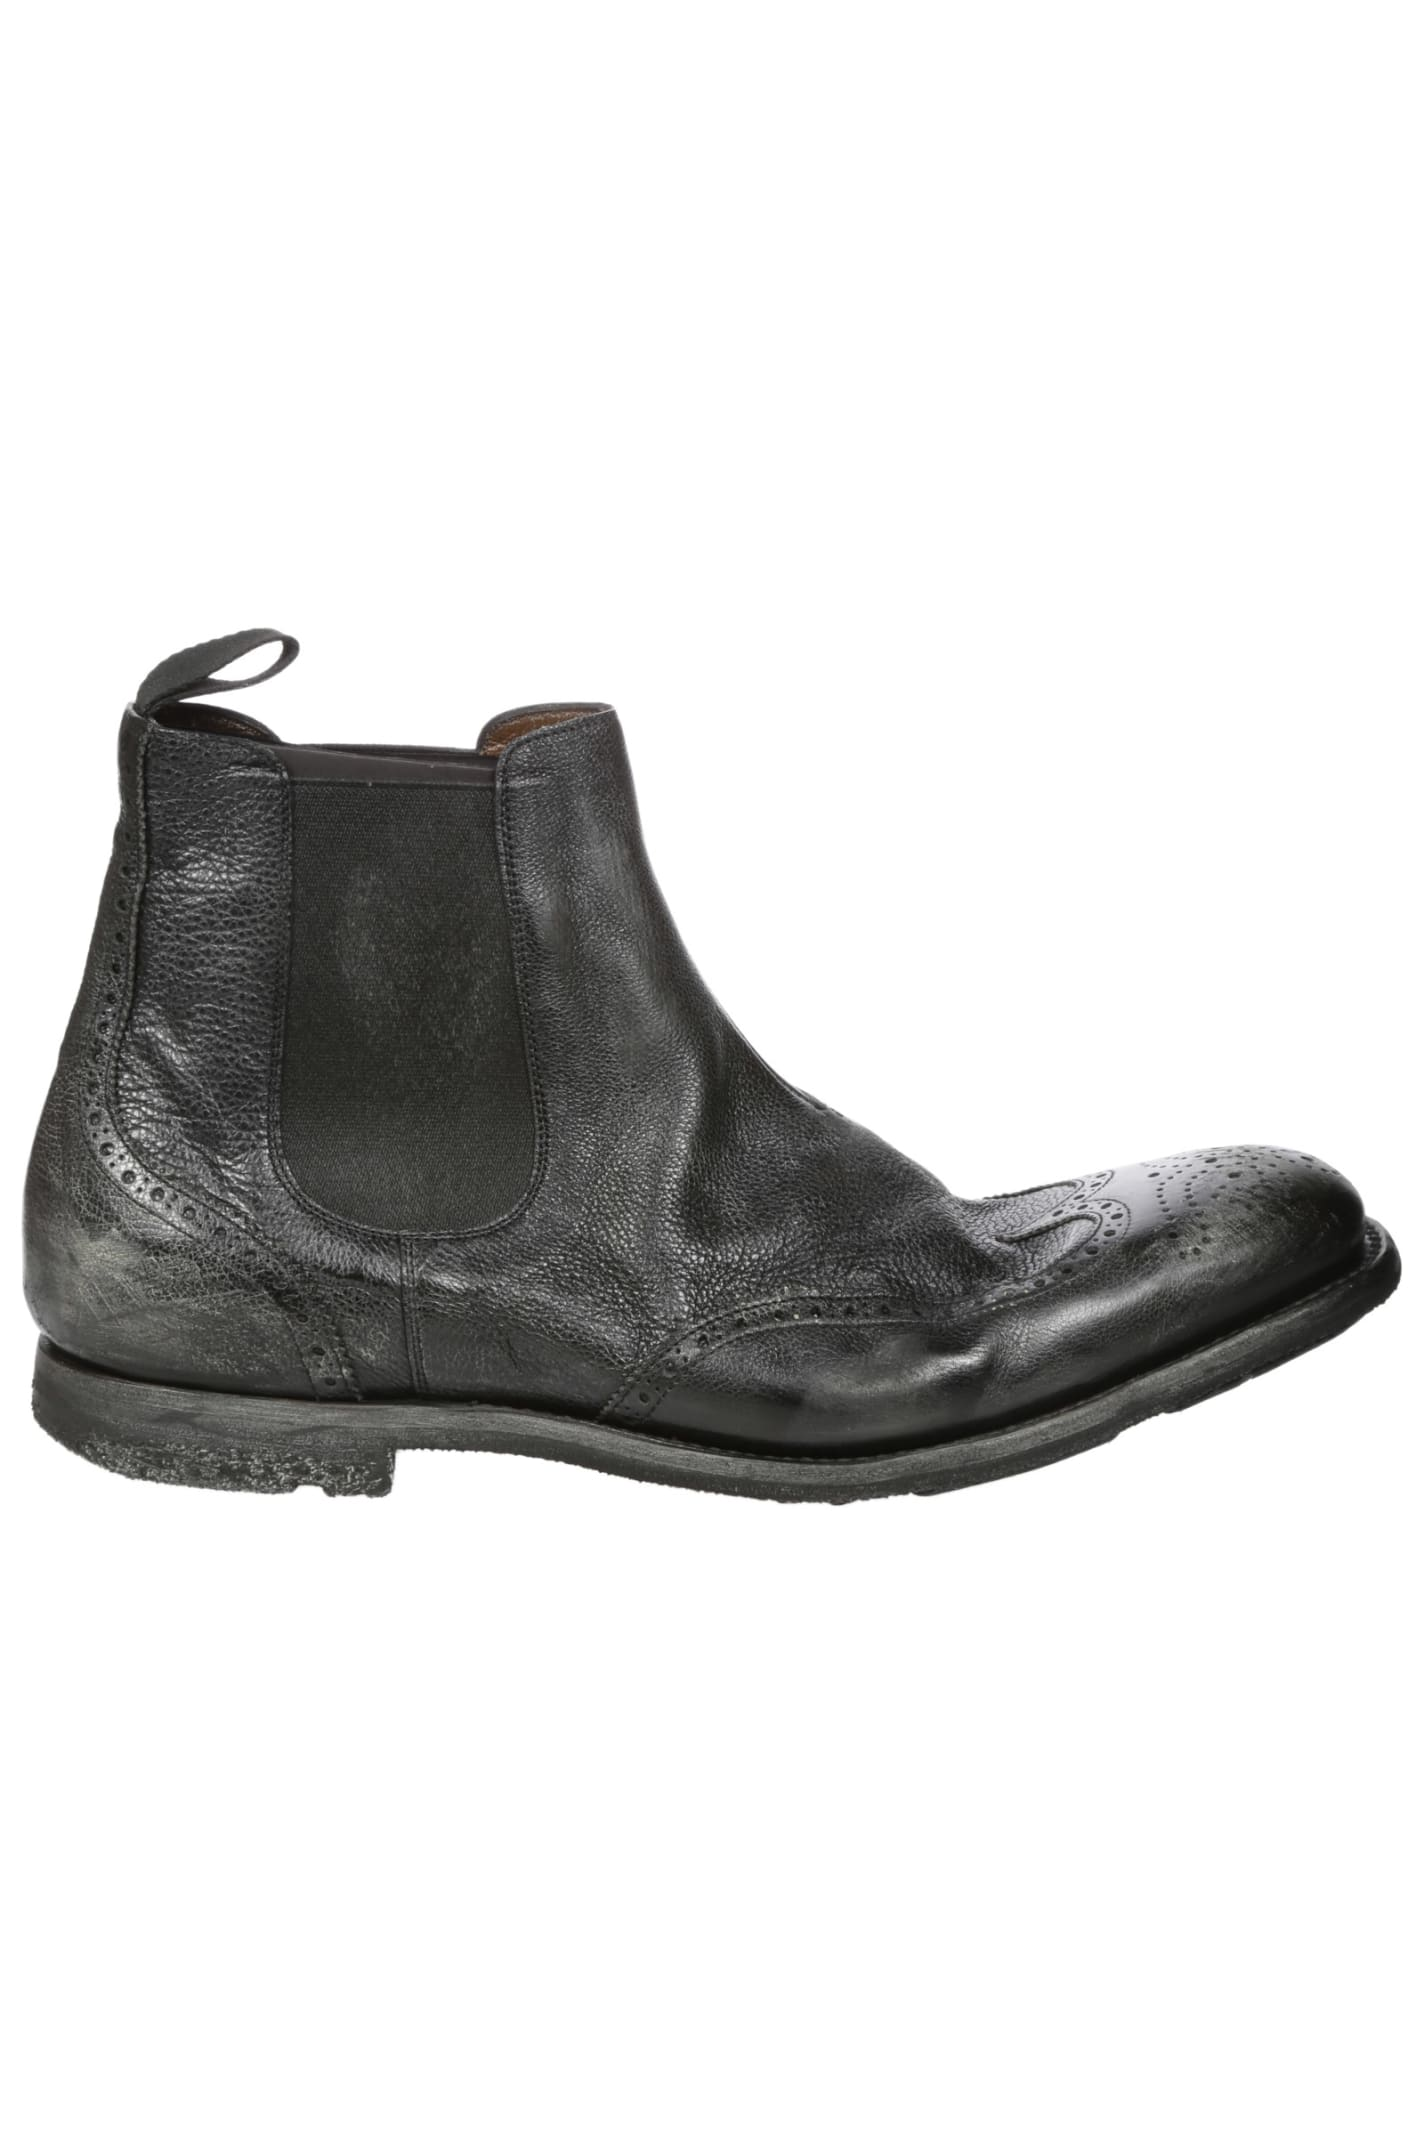 Church's Leathers KETSBY 1930 ANKLE BOOTS